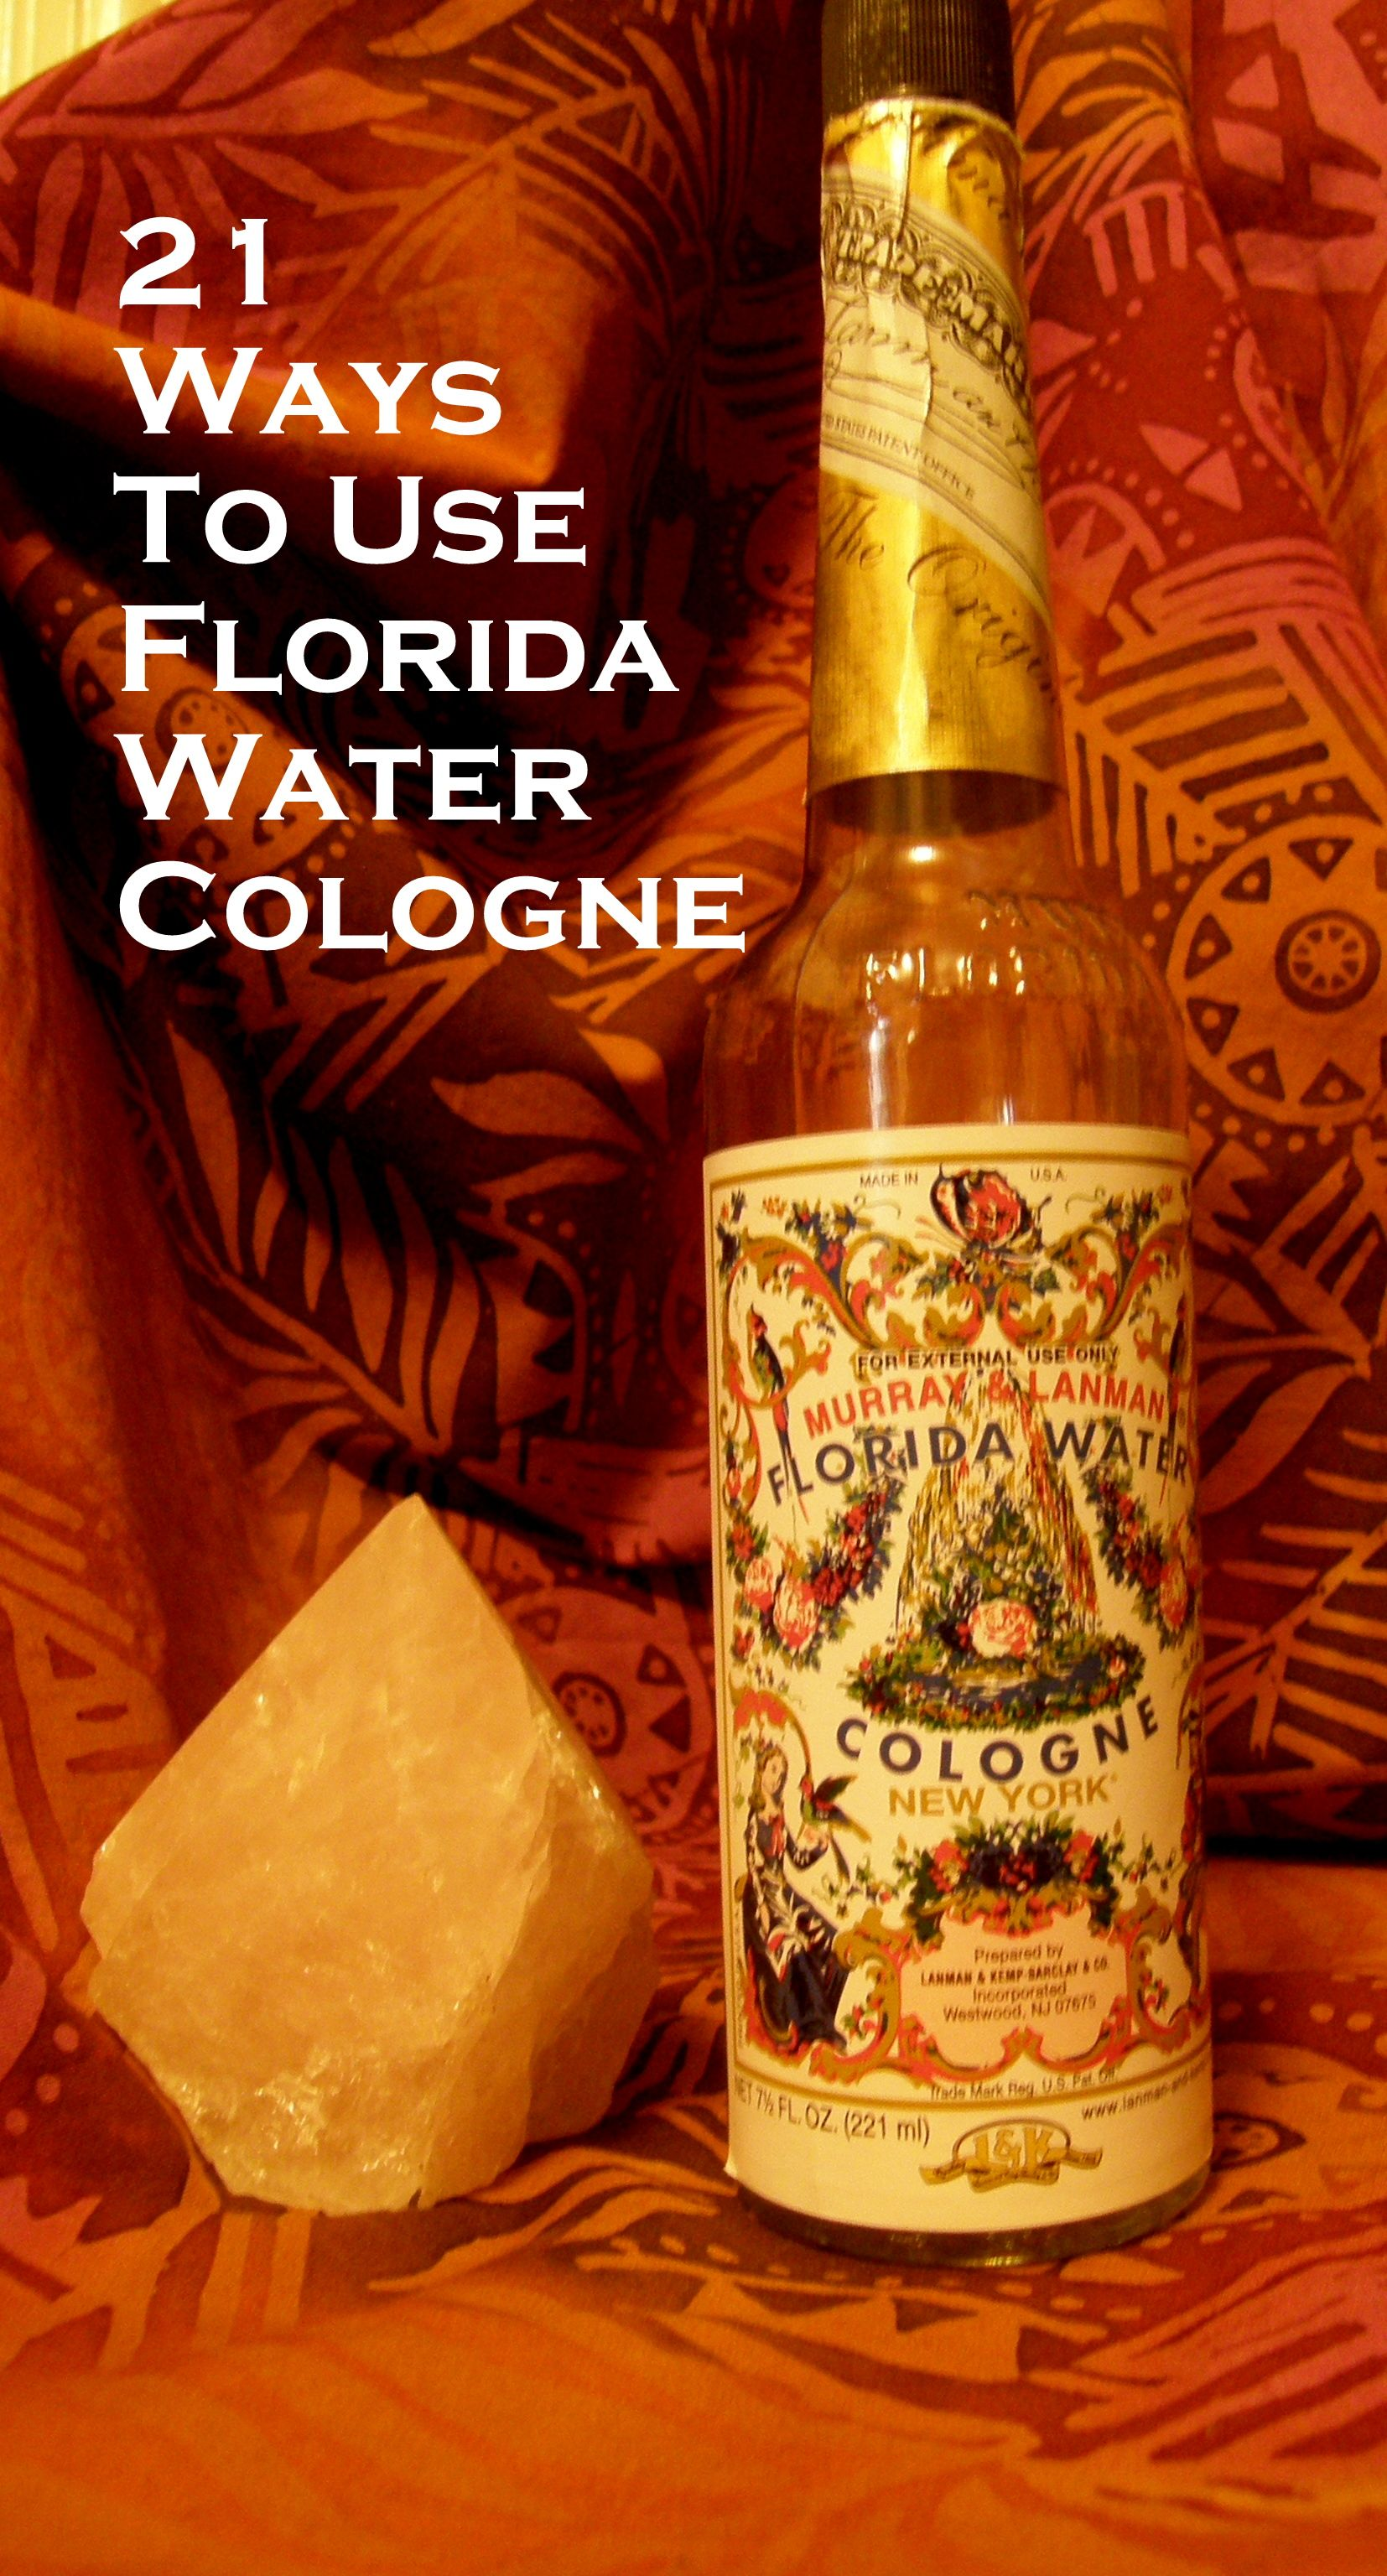 21 Wonderful Ways to Use Florida Water Cologne | Voodoo Universe